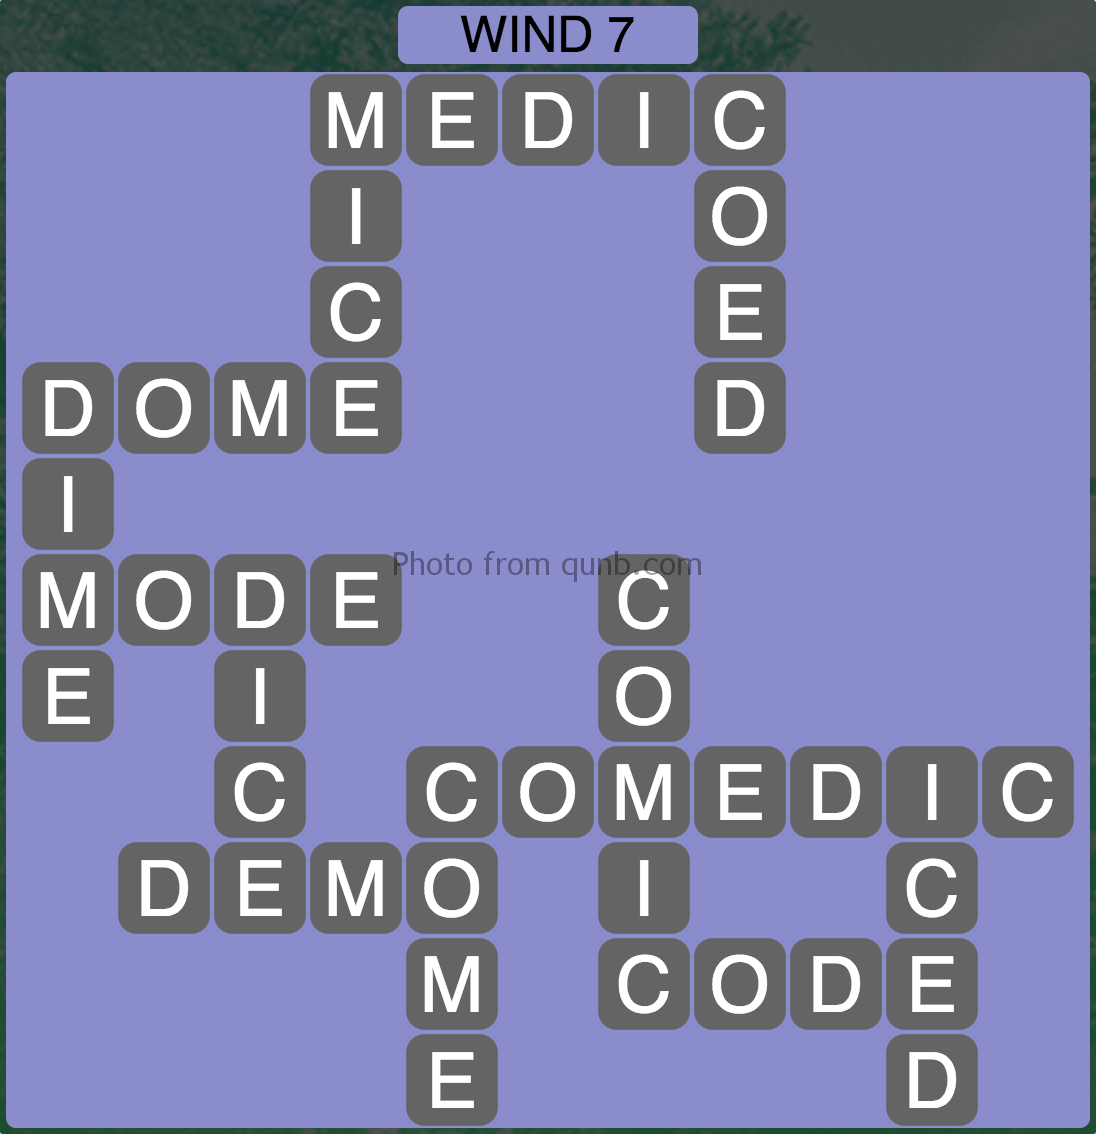 Wordscapes Wind 7 (Level 935) Answers